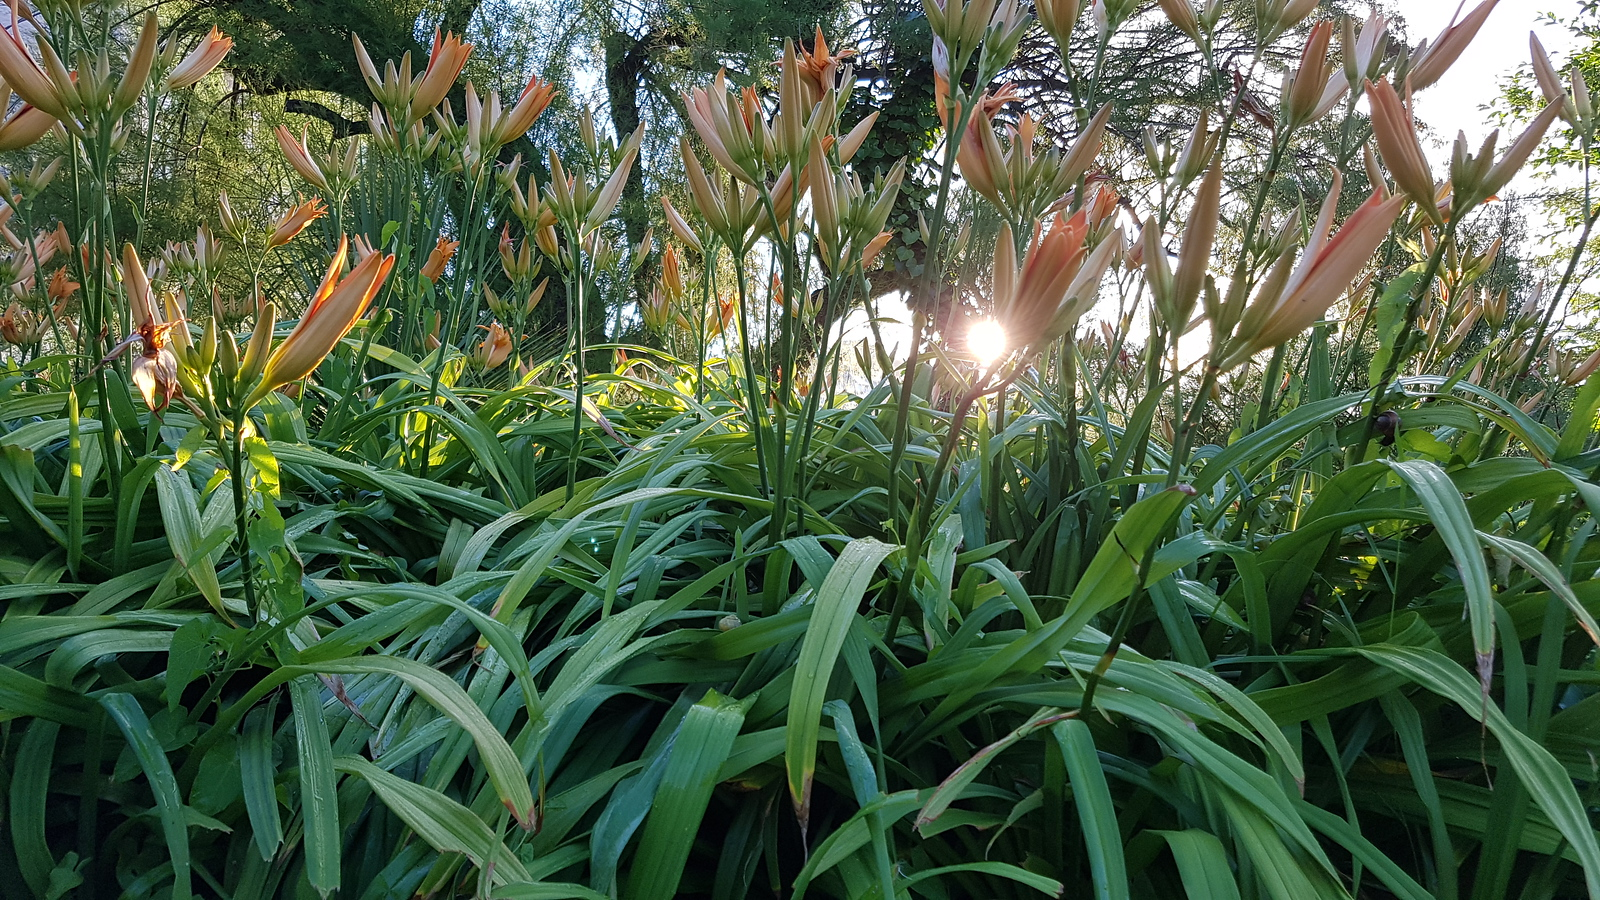 Lillies out in Summer